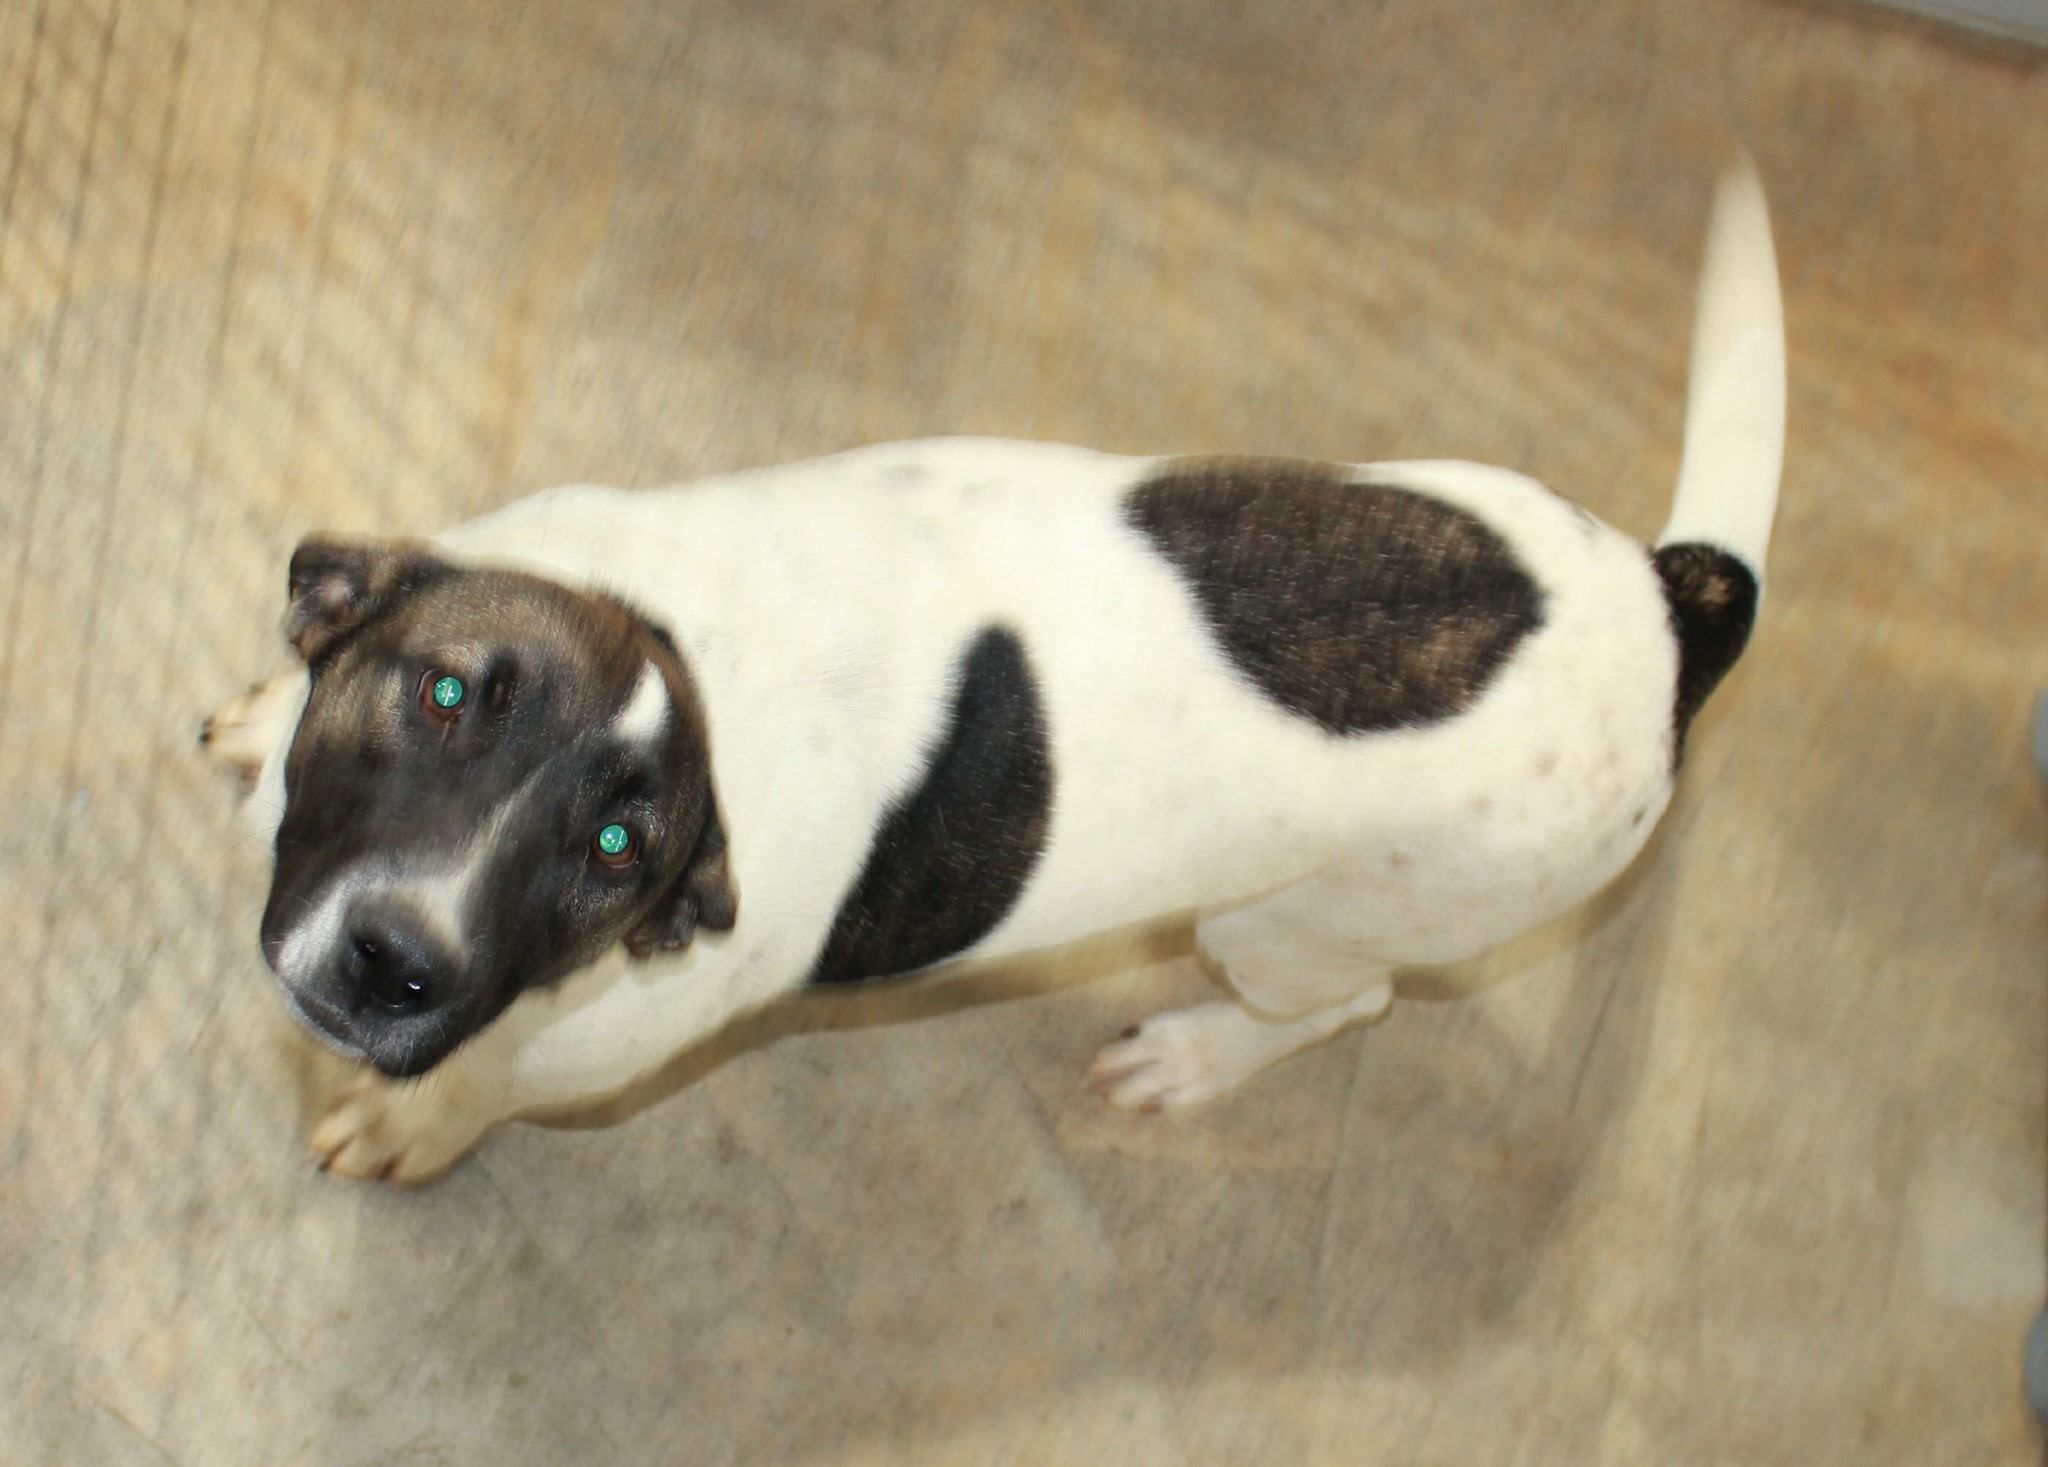 Go to Facebook page:  Mobile and Baldwin County - Urgent Dogs, enter dogs name:  Sabra.